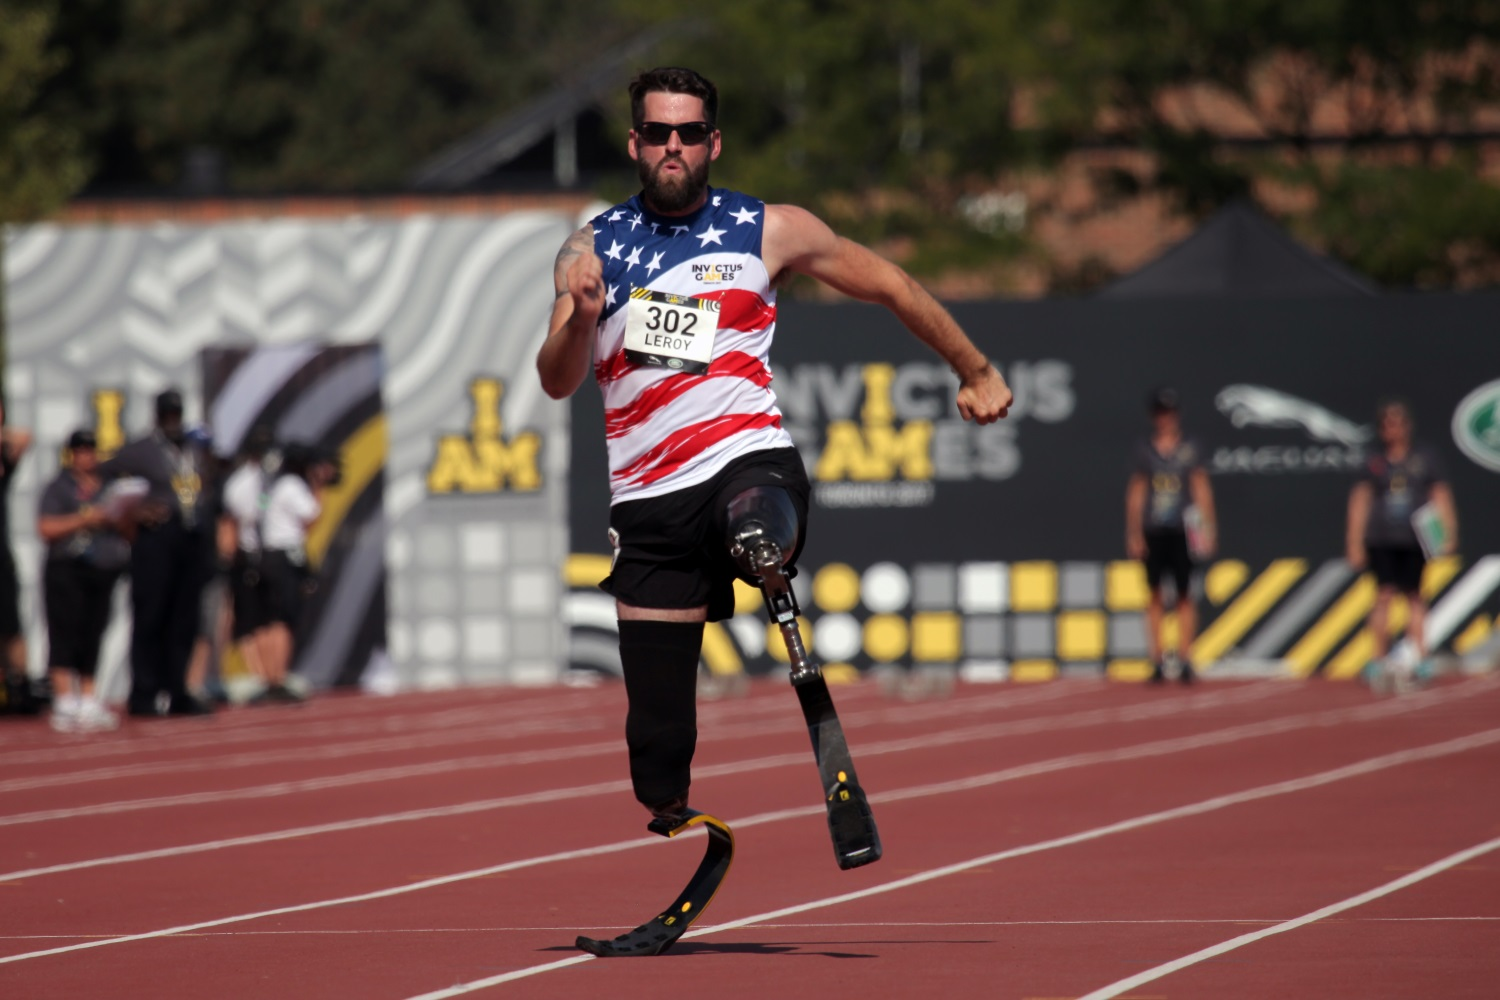 U.S. Army veteran Sgt. Stefan Leroy competes in the Invictus Games' 100-meter dash event at York Lions Stadium in Toronto, Canada, on Sept. 24, 2017. The Invictus Games was created by Prince Harry of Wales. (Staff Sgt. Daniel Luksan/Army)